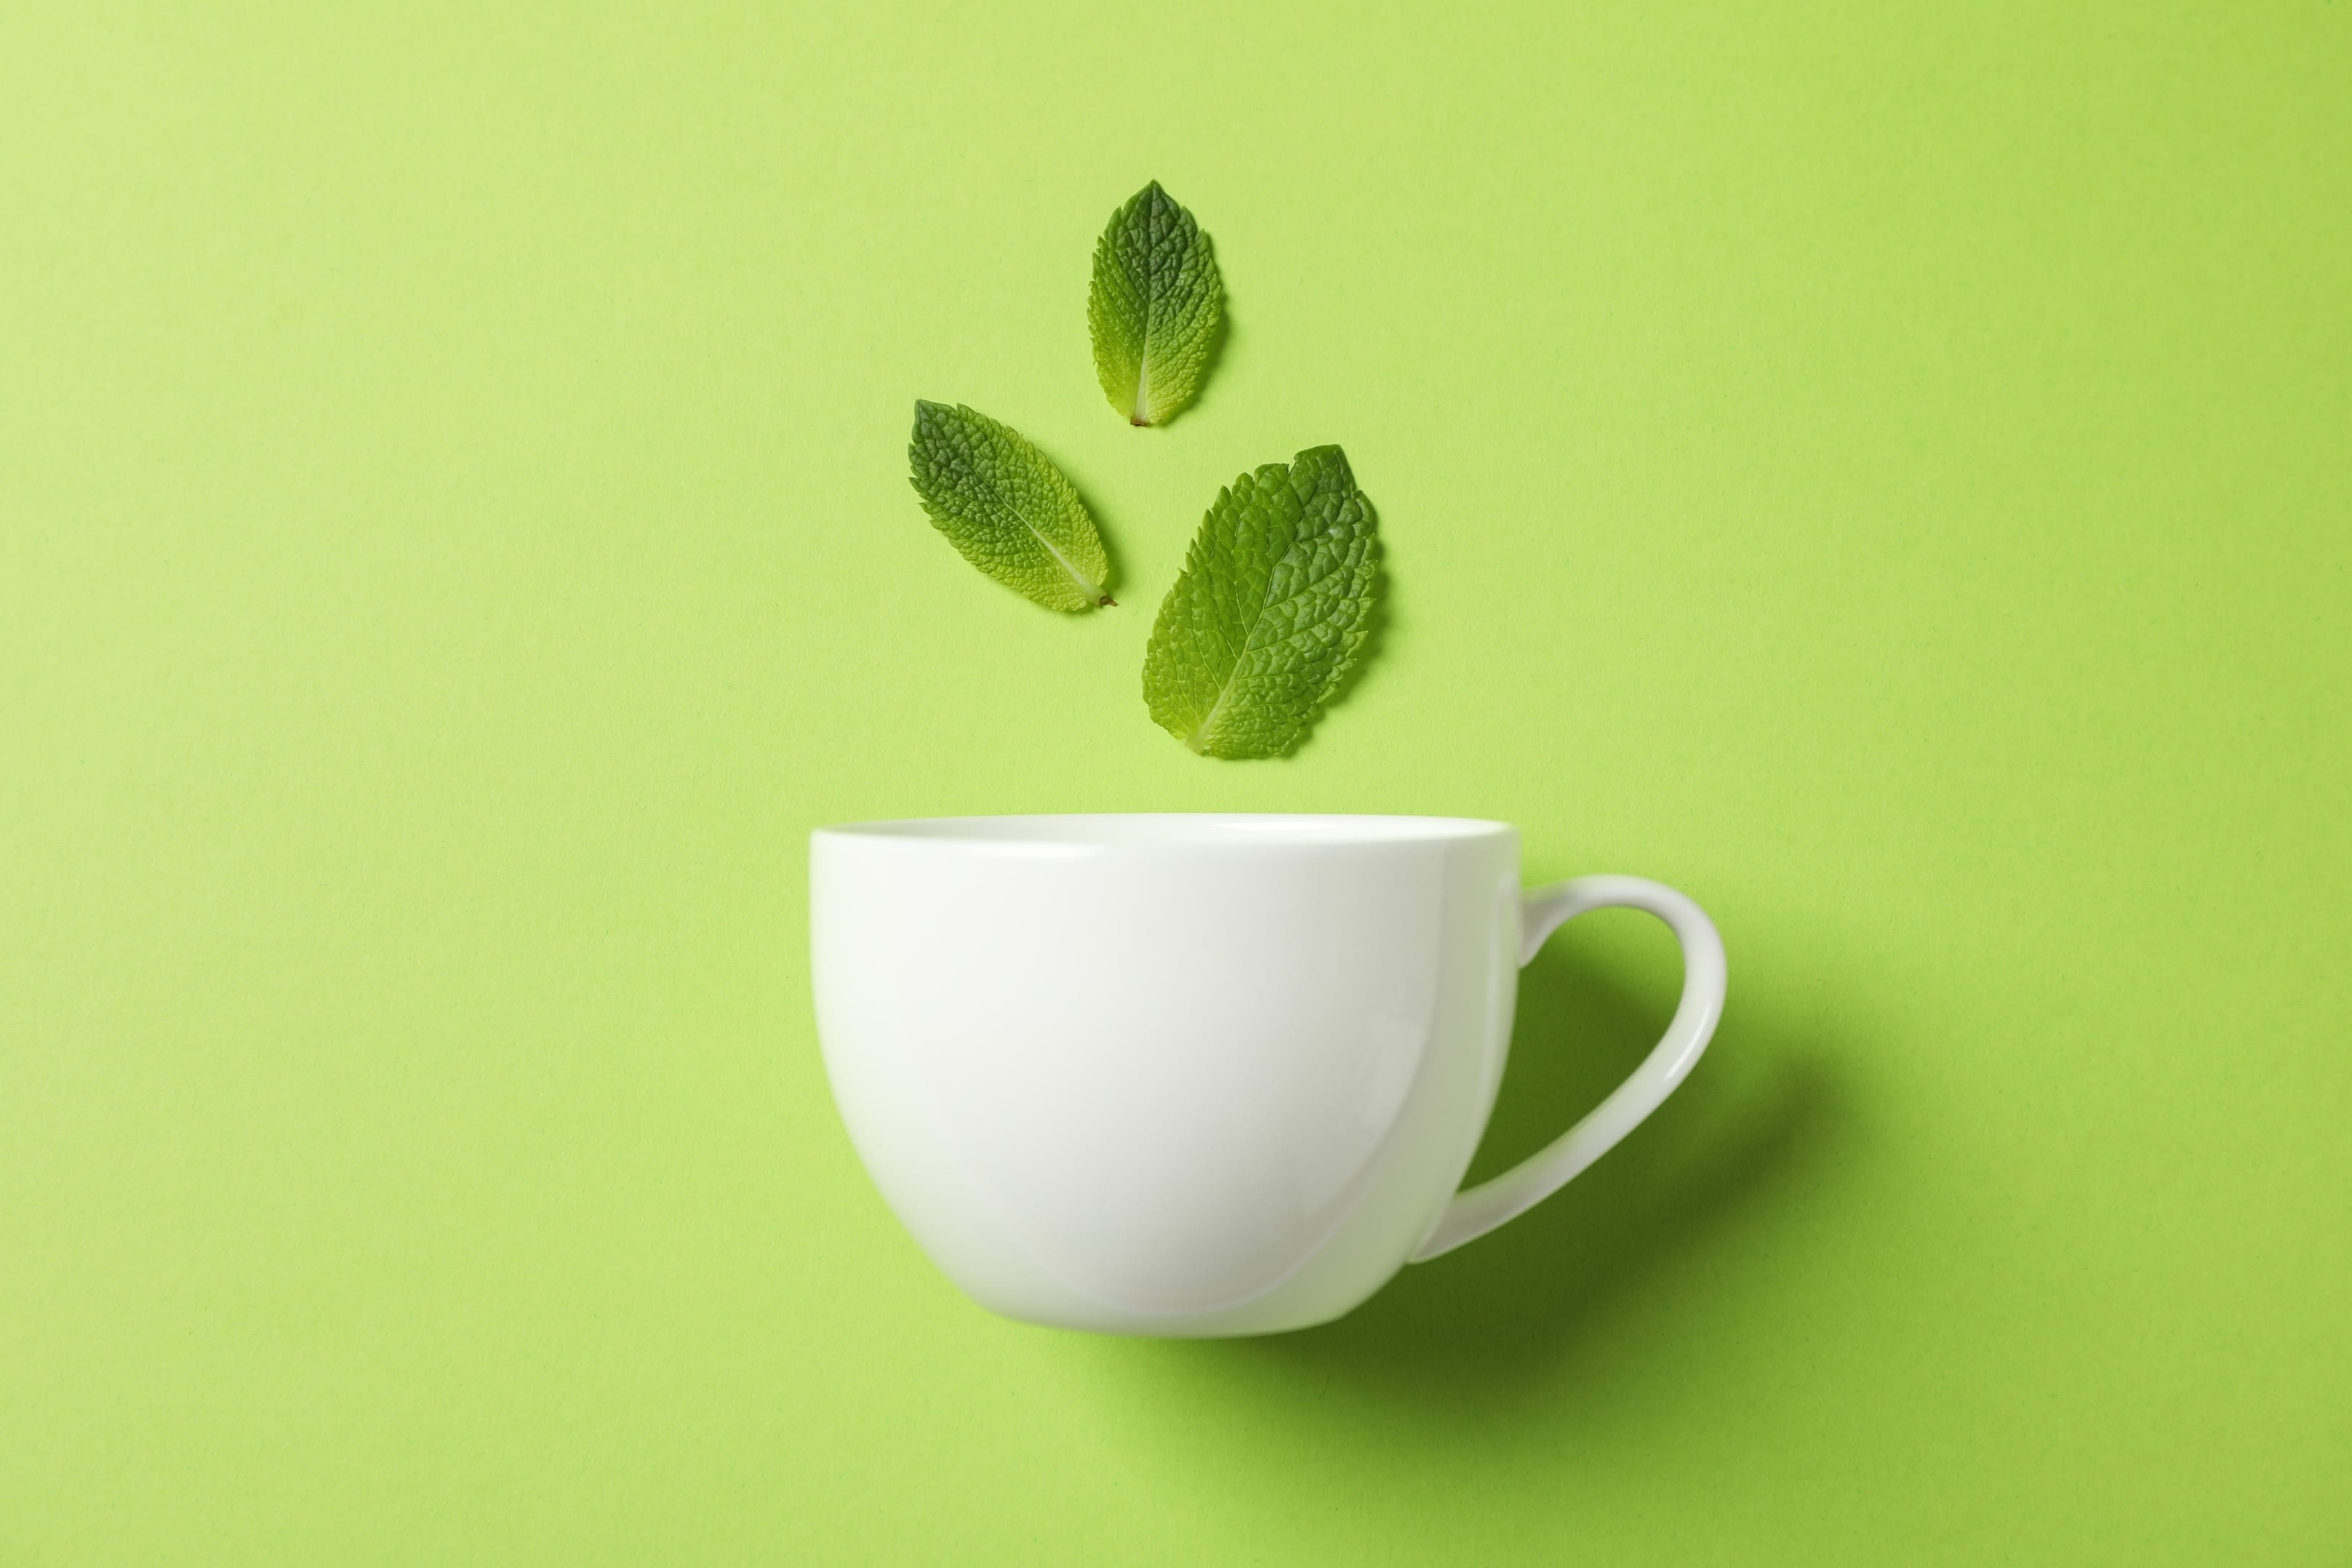 Green tea in white cup with mint leaves on green background